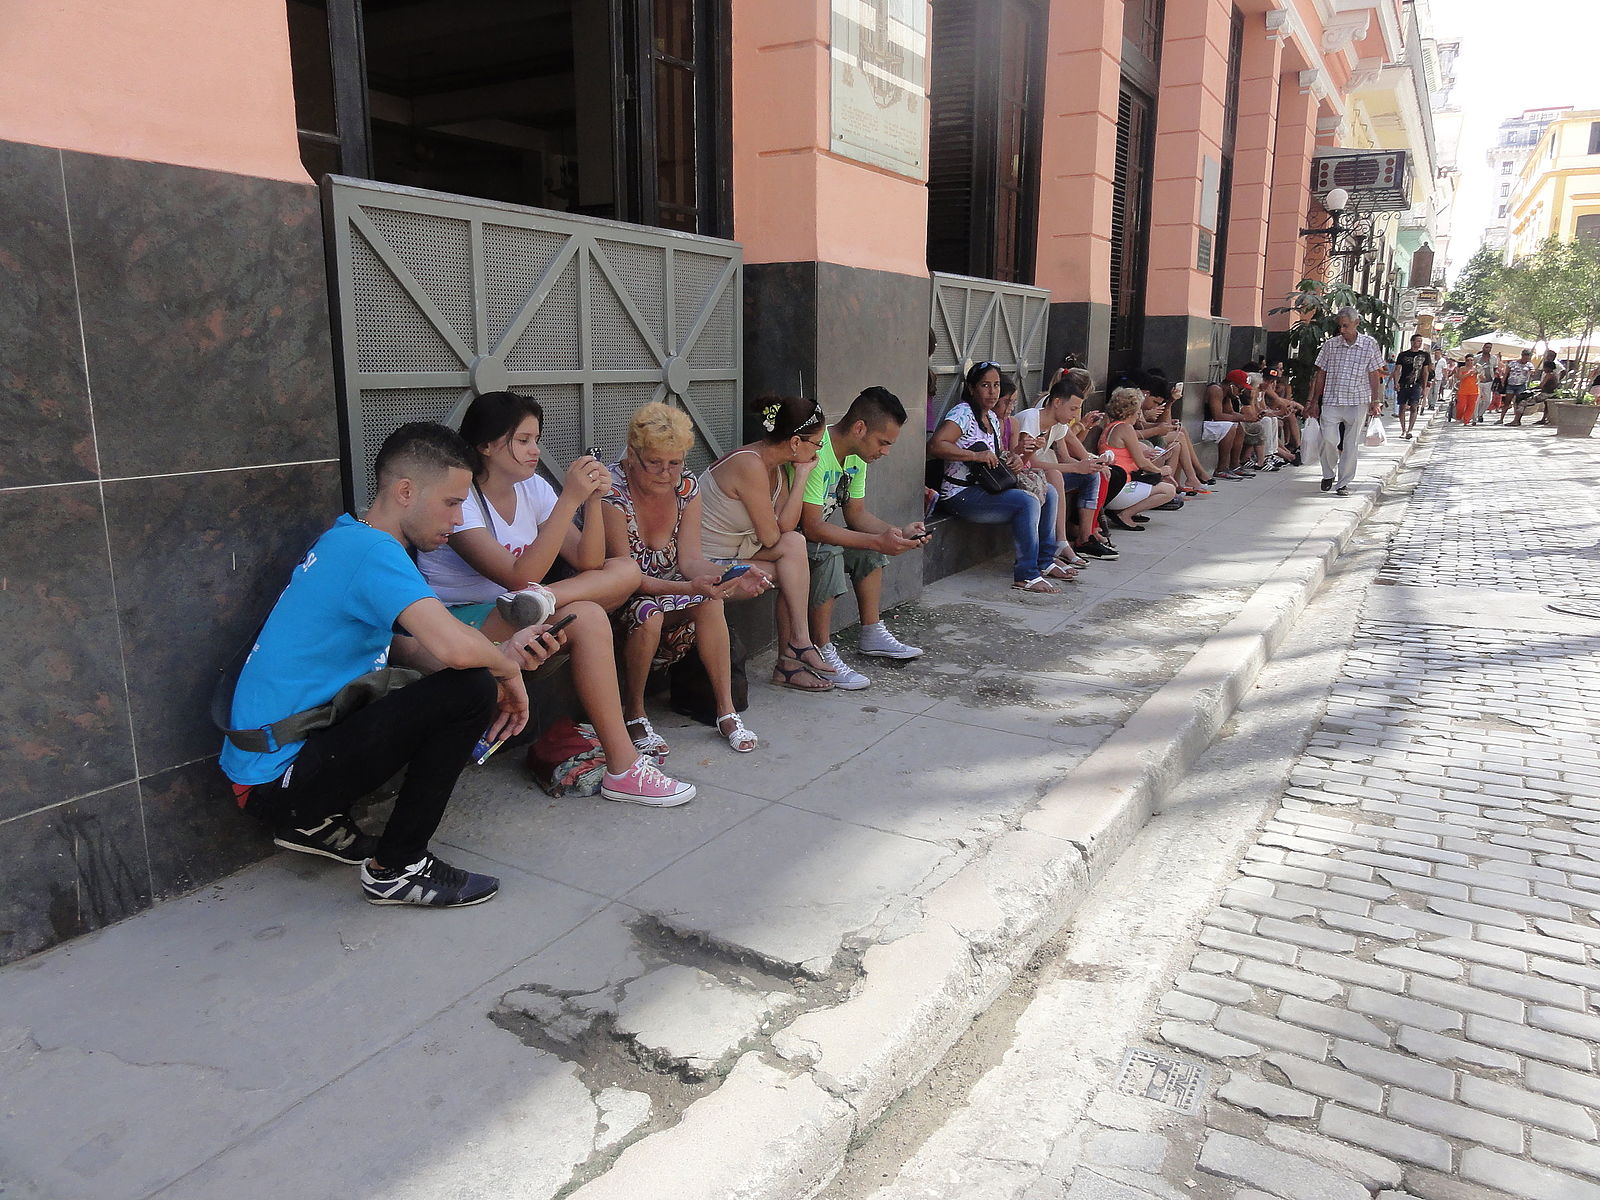 Online, In Line: Cuba's Internet Liberalisation Only a Small Reason to Celebrate